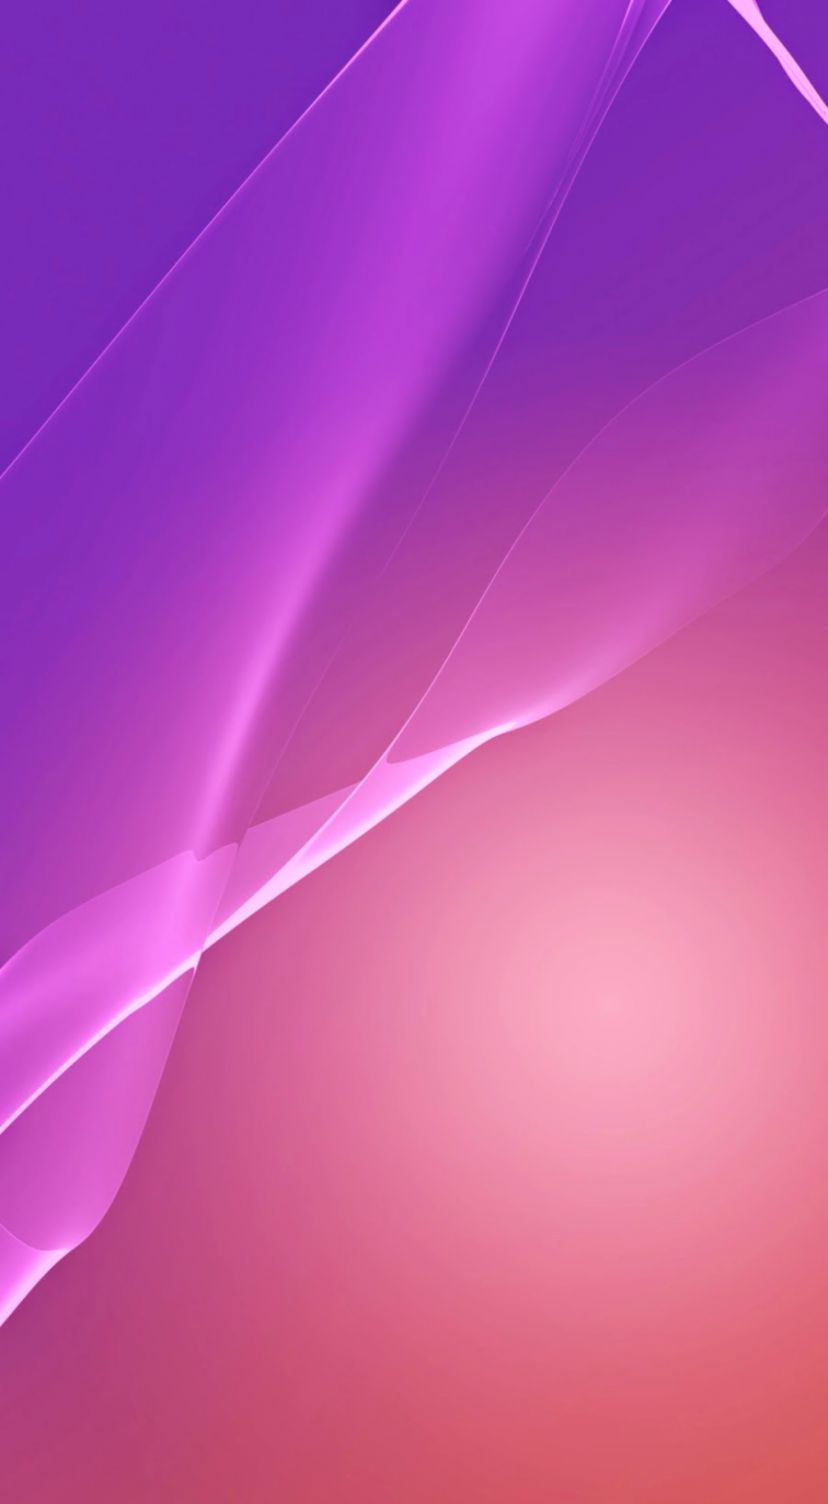 Sony xperia wallpapers wallpaper cave.